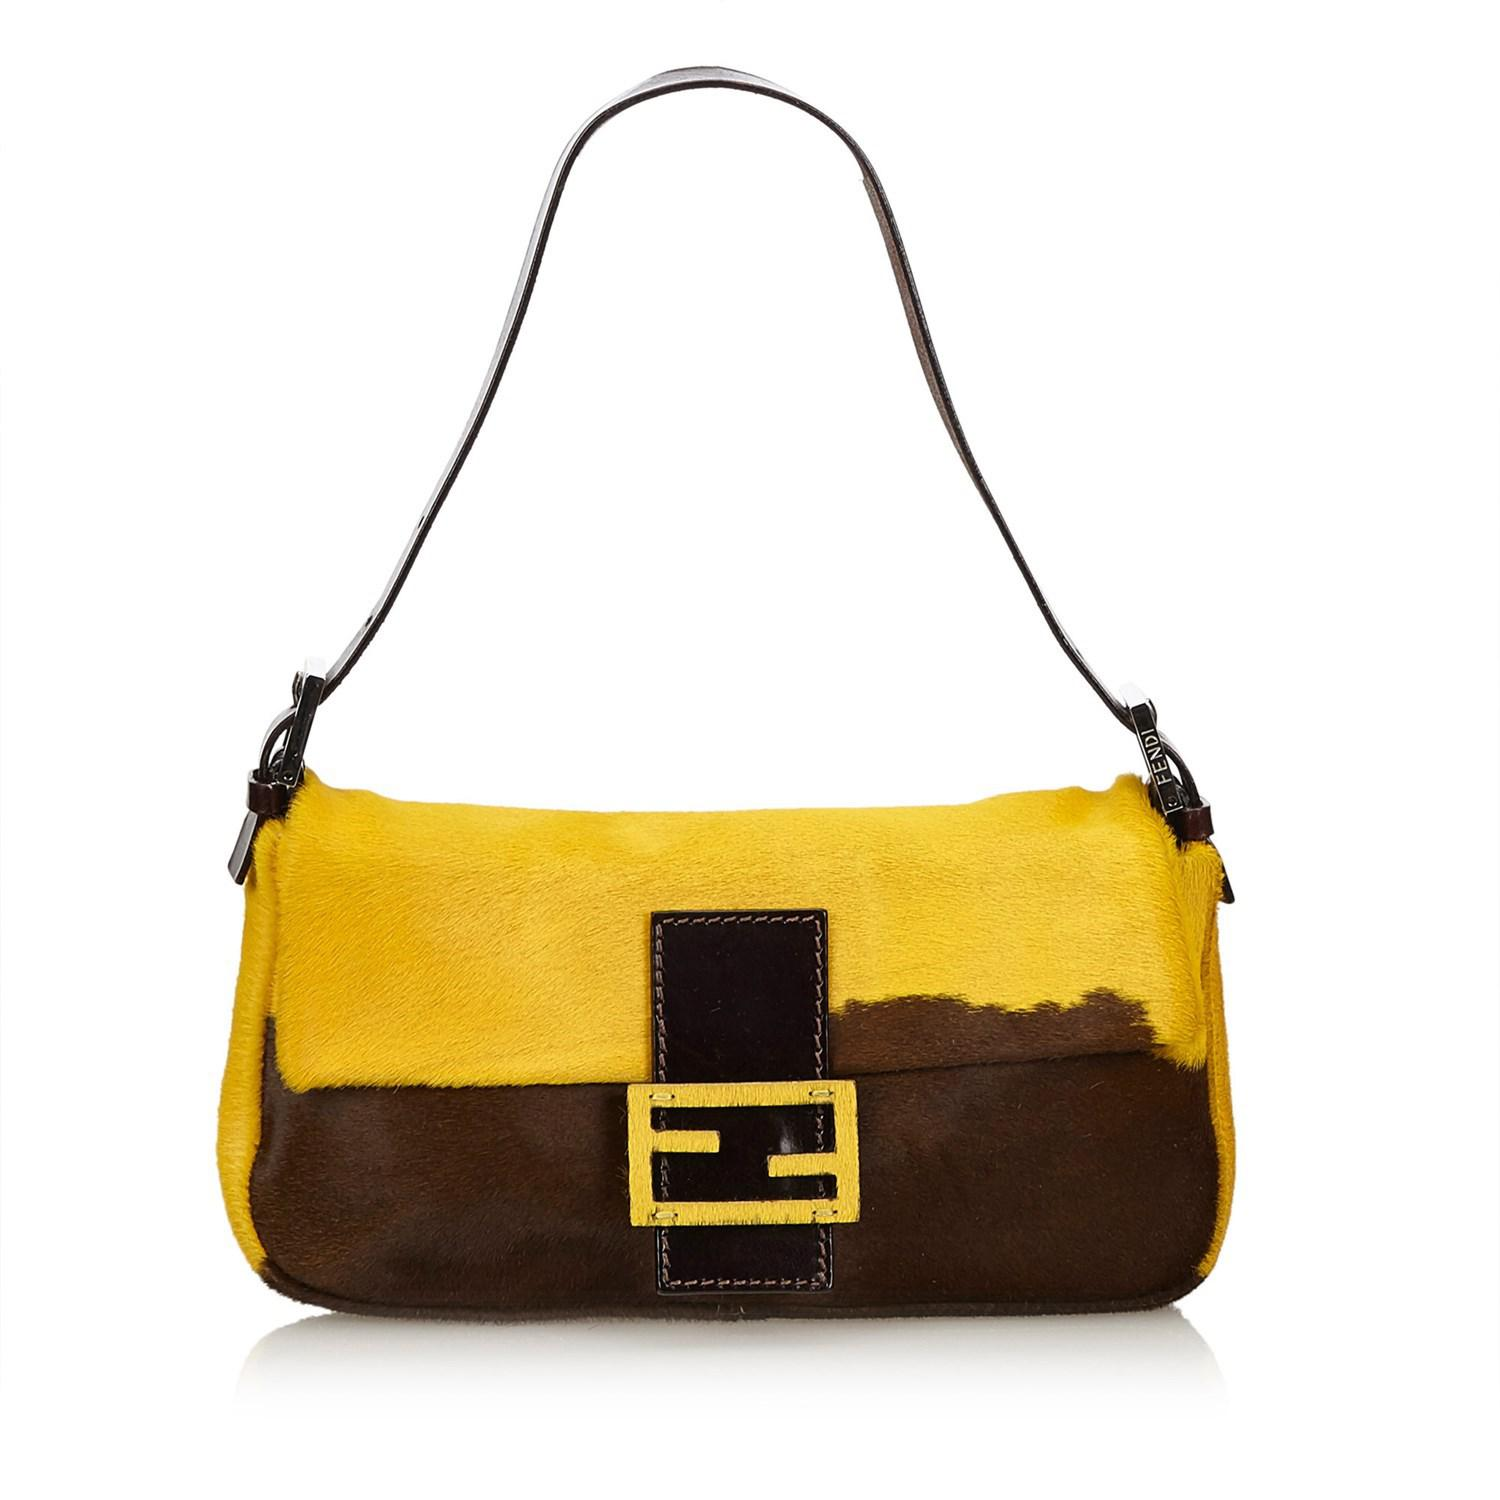 be40482a5c Lyst - Fendi Pony Hair Baguette in Yellow